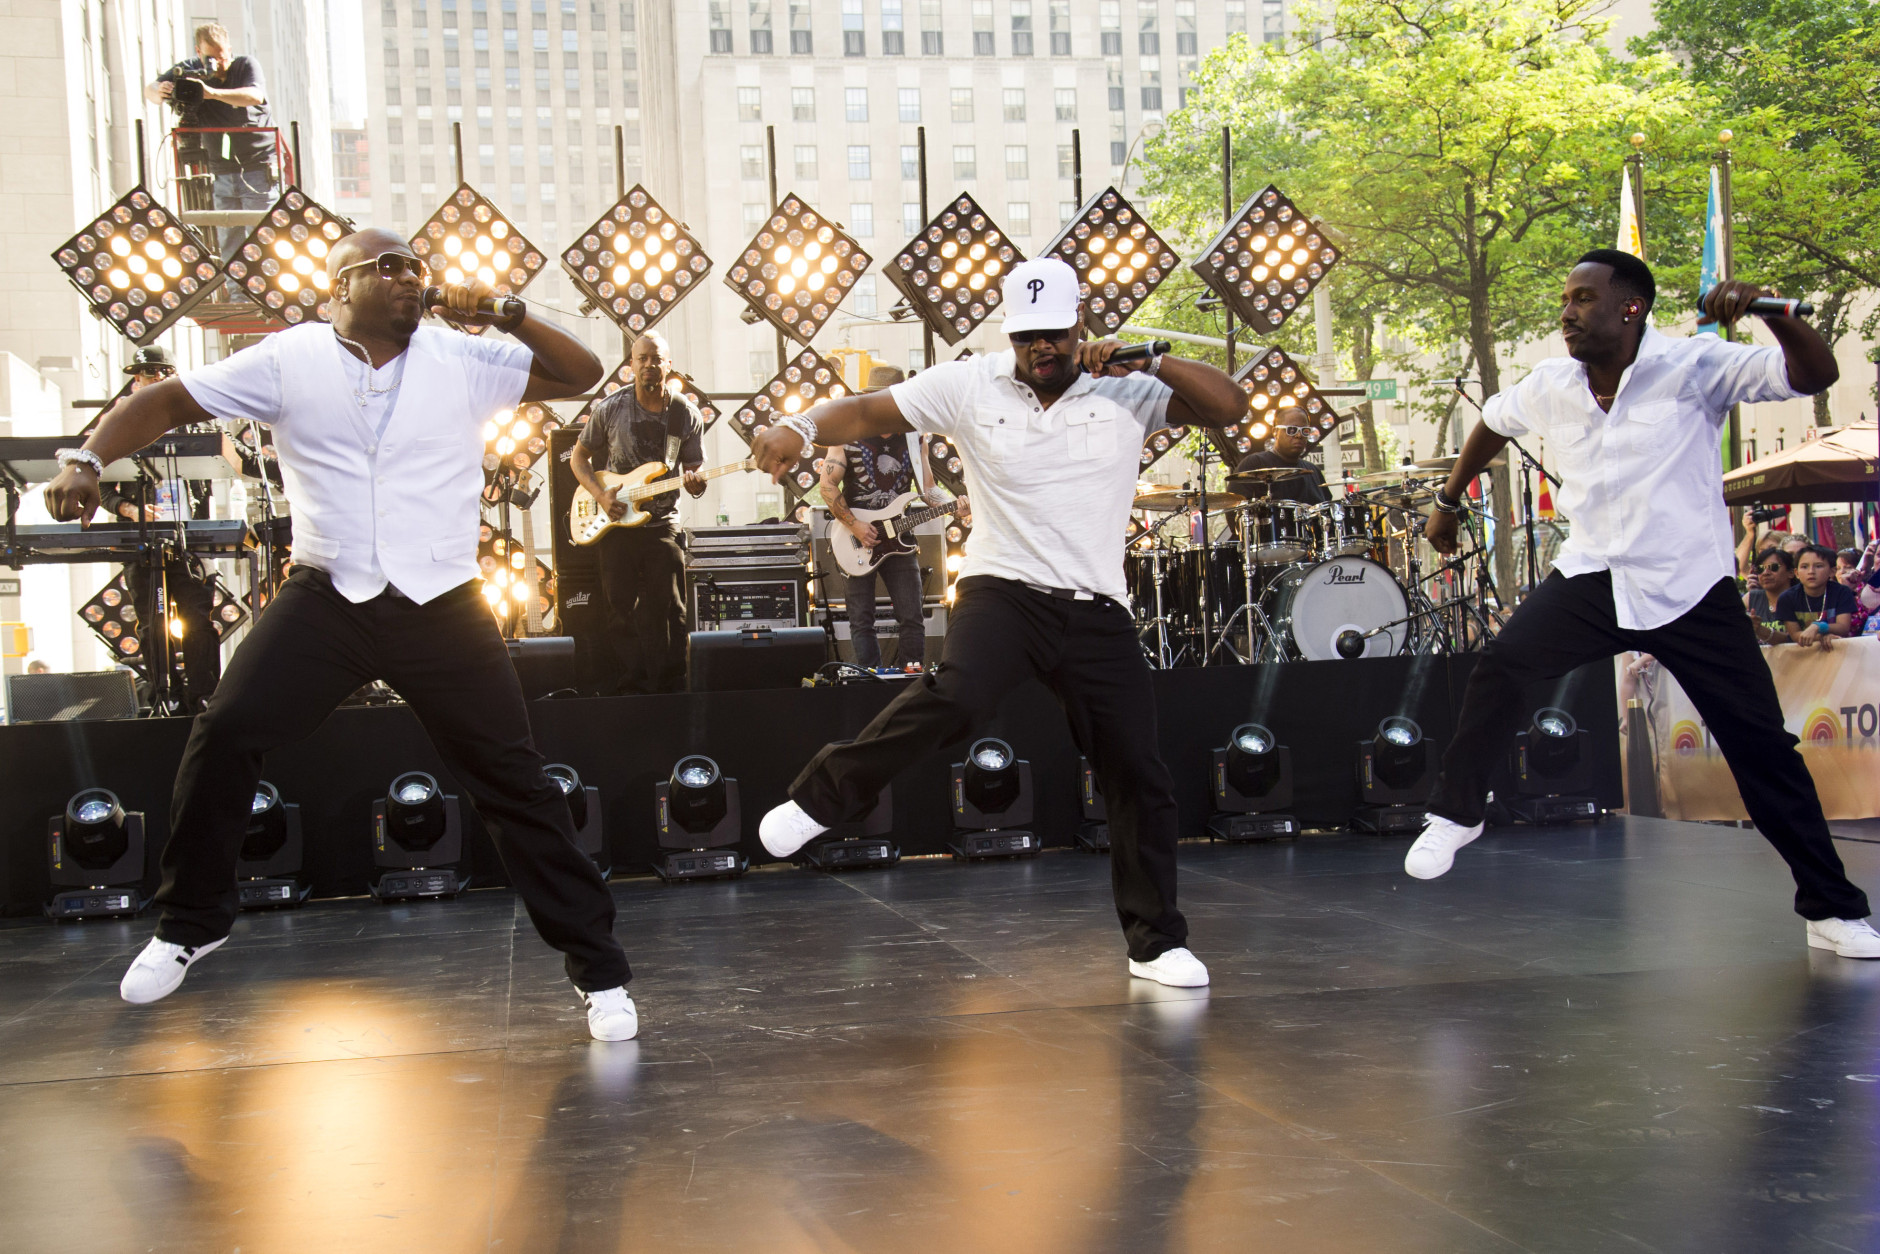 """Boyz II Men band members, from left, Wanya Morris, Nathan Morris and Shawn Stockman perform on NBC's """"Today"""" show on Friday, May 31, 2013 in New York. (Photo by Charles Sykes/Invision/AP)"""